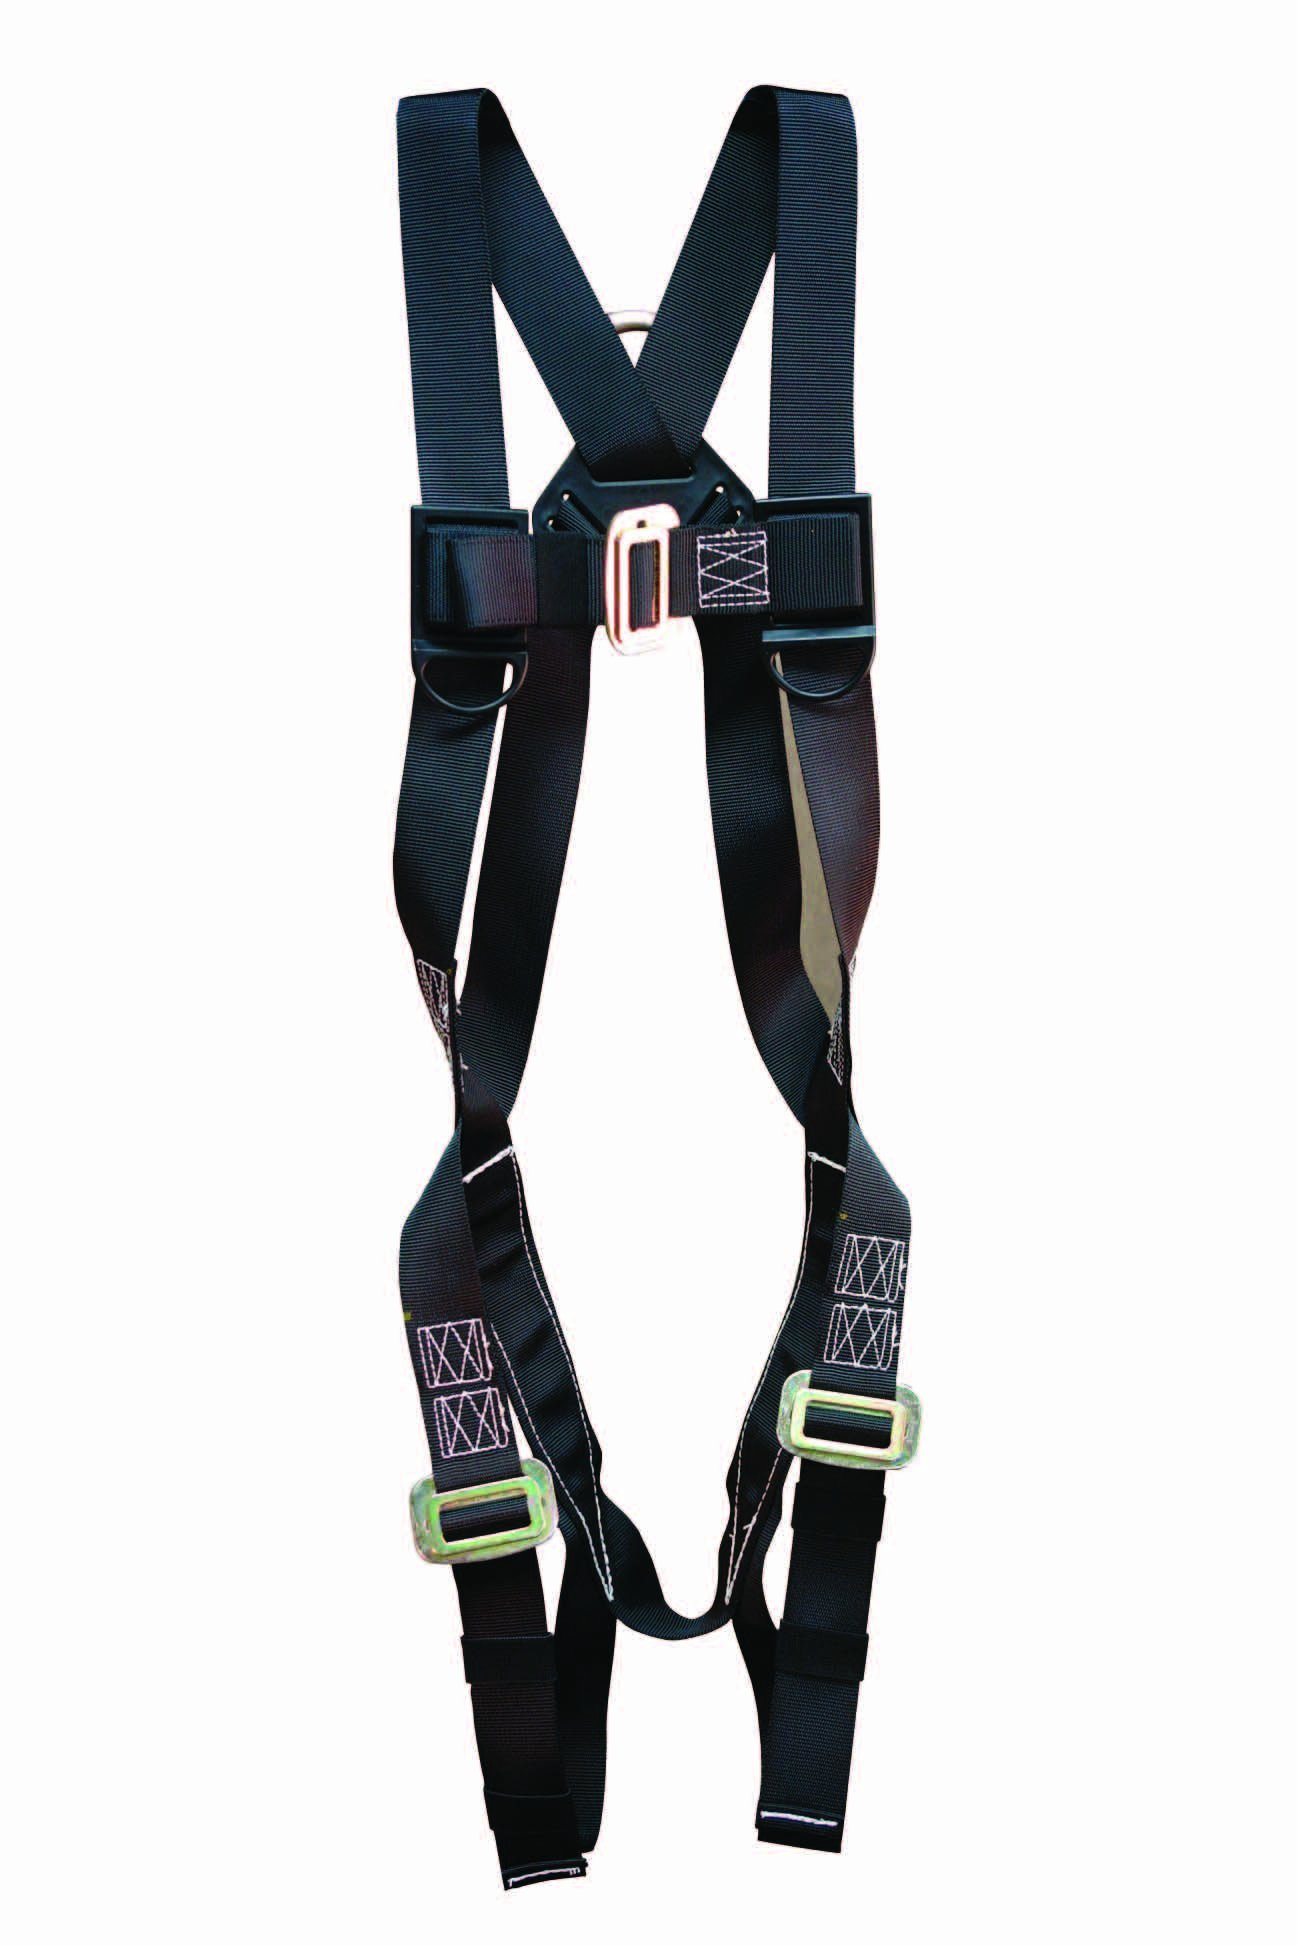 Elk River 57102 StageHand 1 D-Ring Harness with Mating Buckle and Fall Indicator, Fits Small to Large, Black